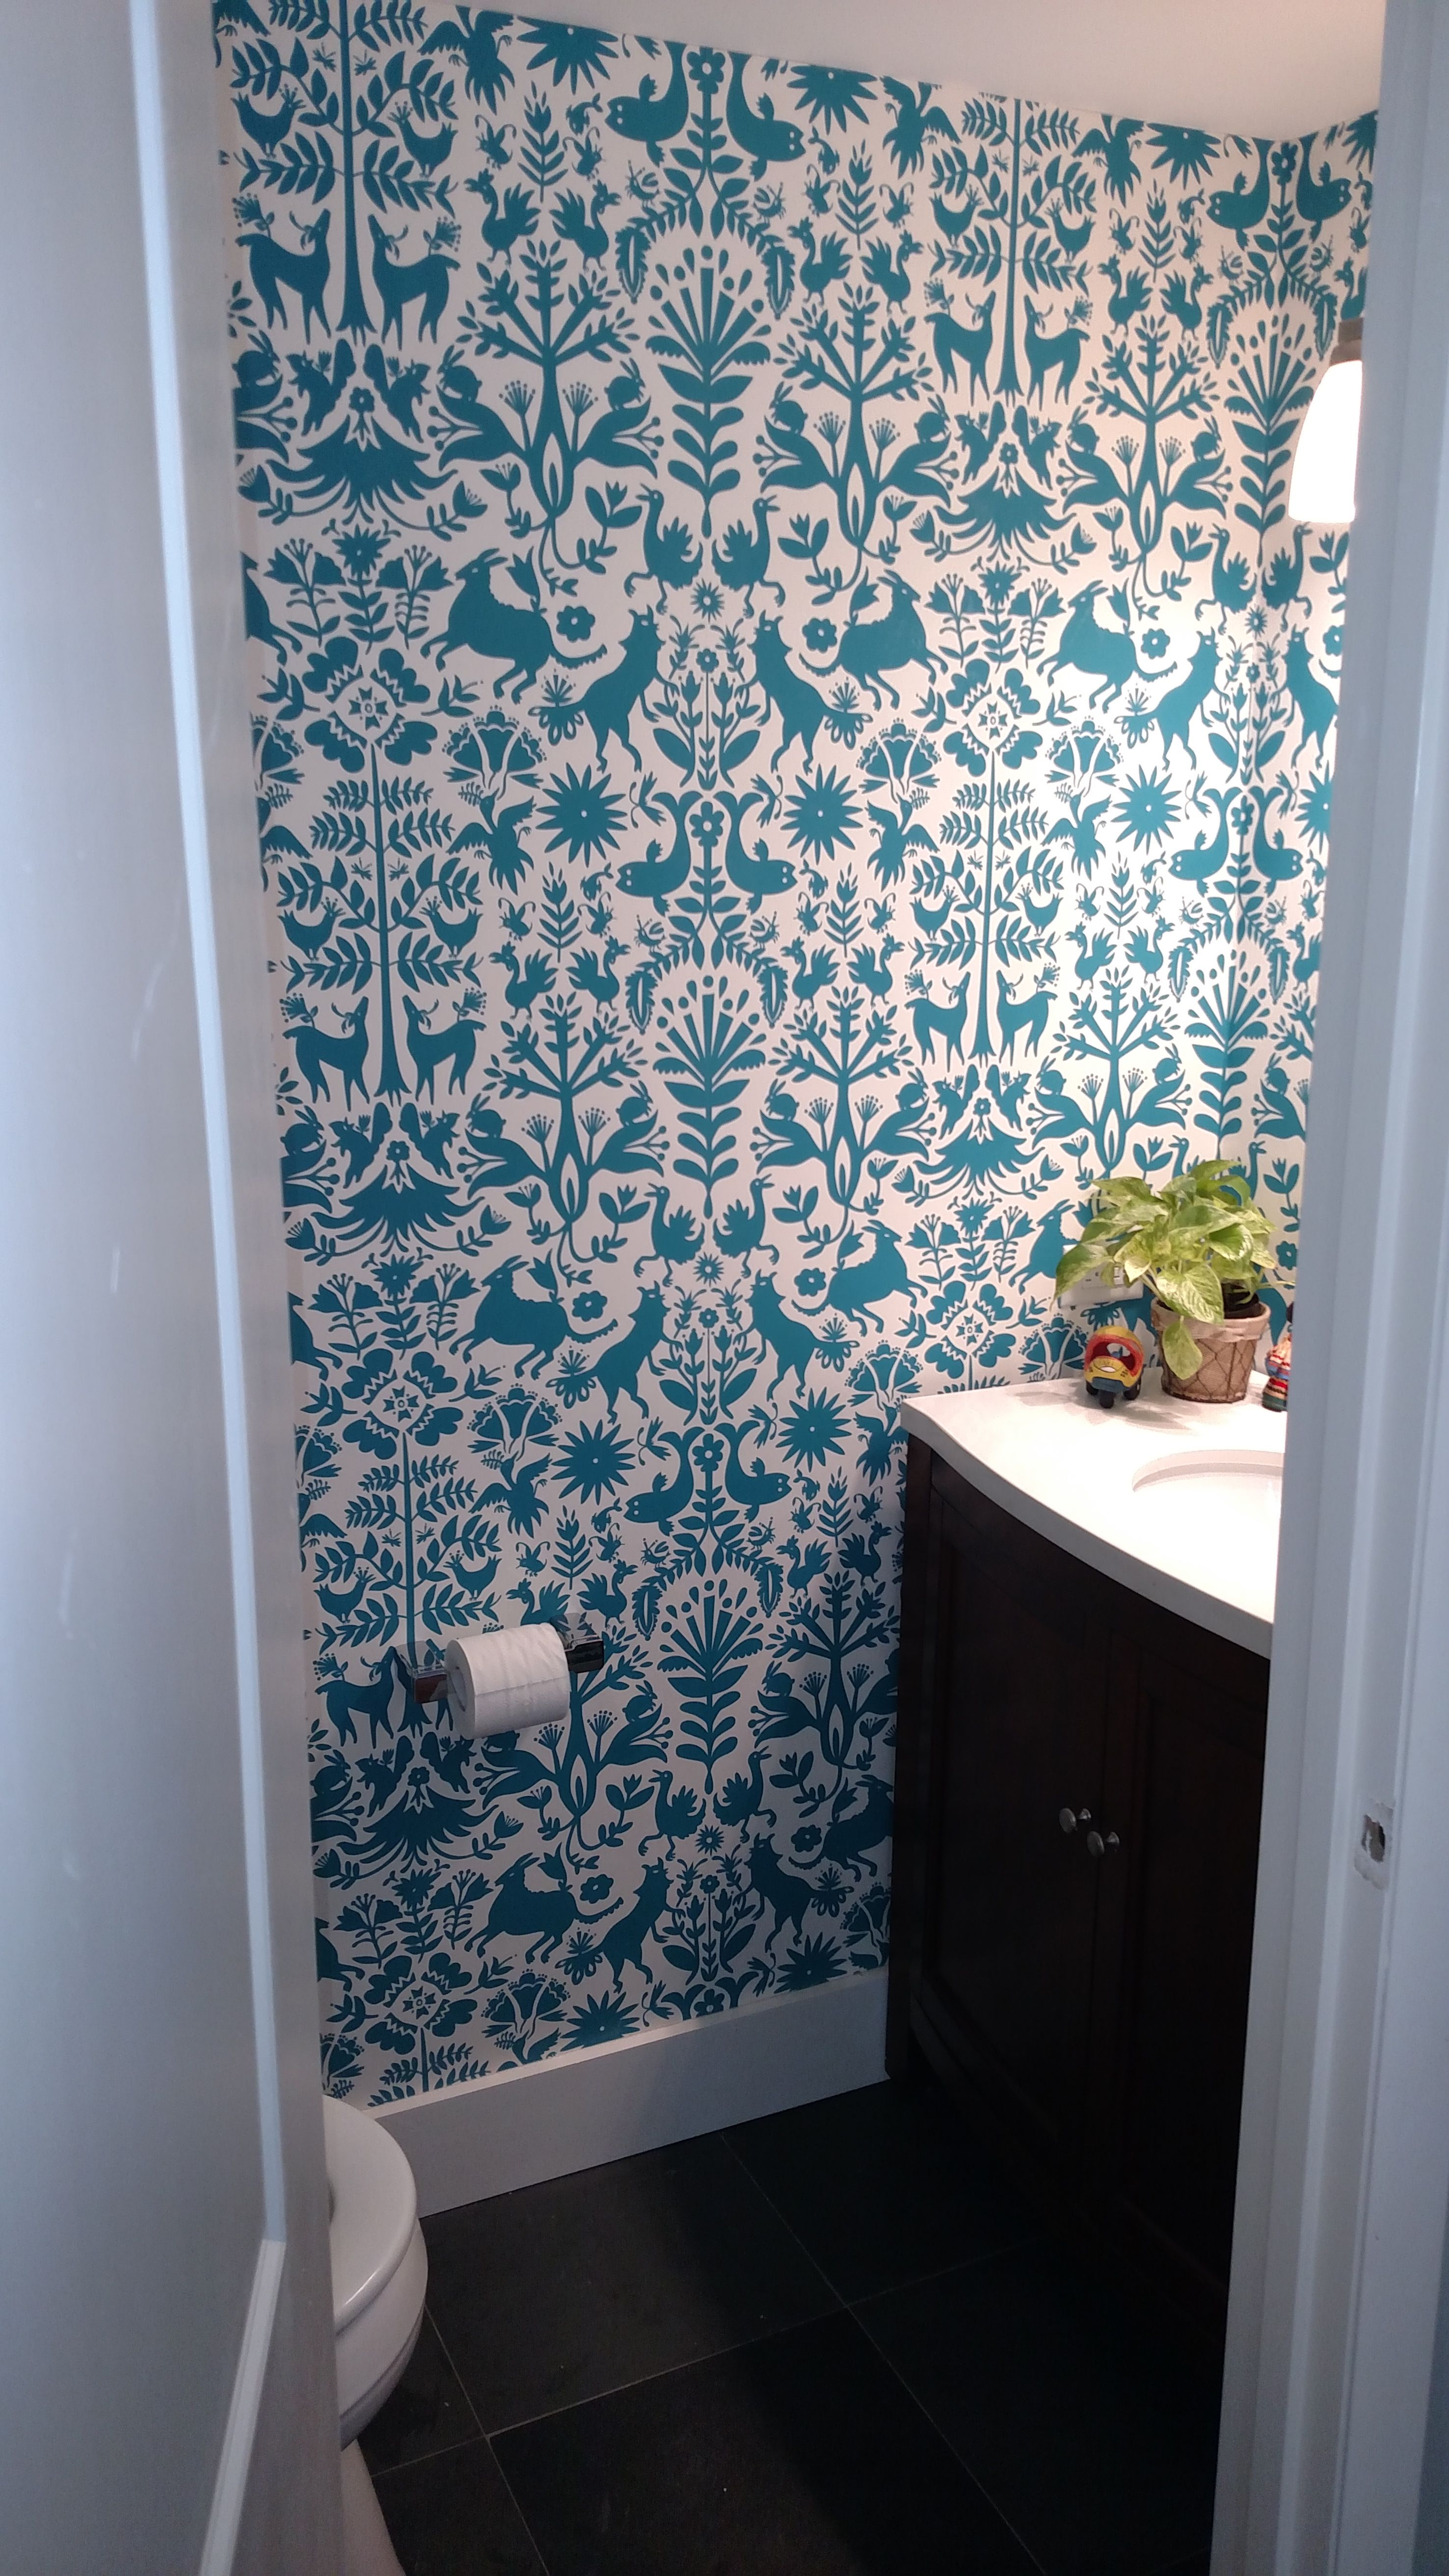 Hygge & West wallpaper Otomi pattern, turquoise color #howihygge ...